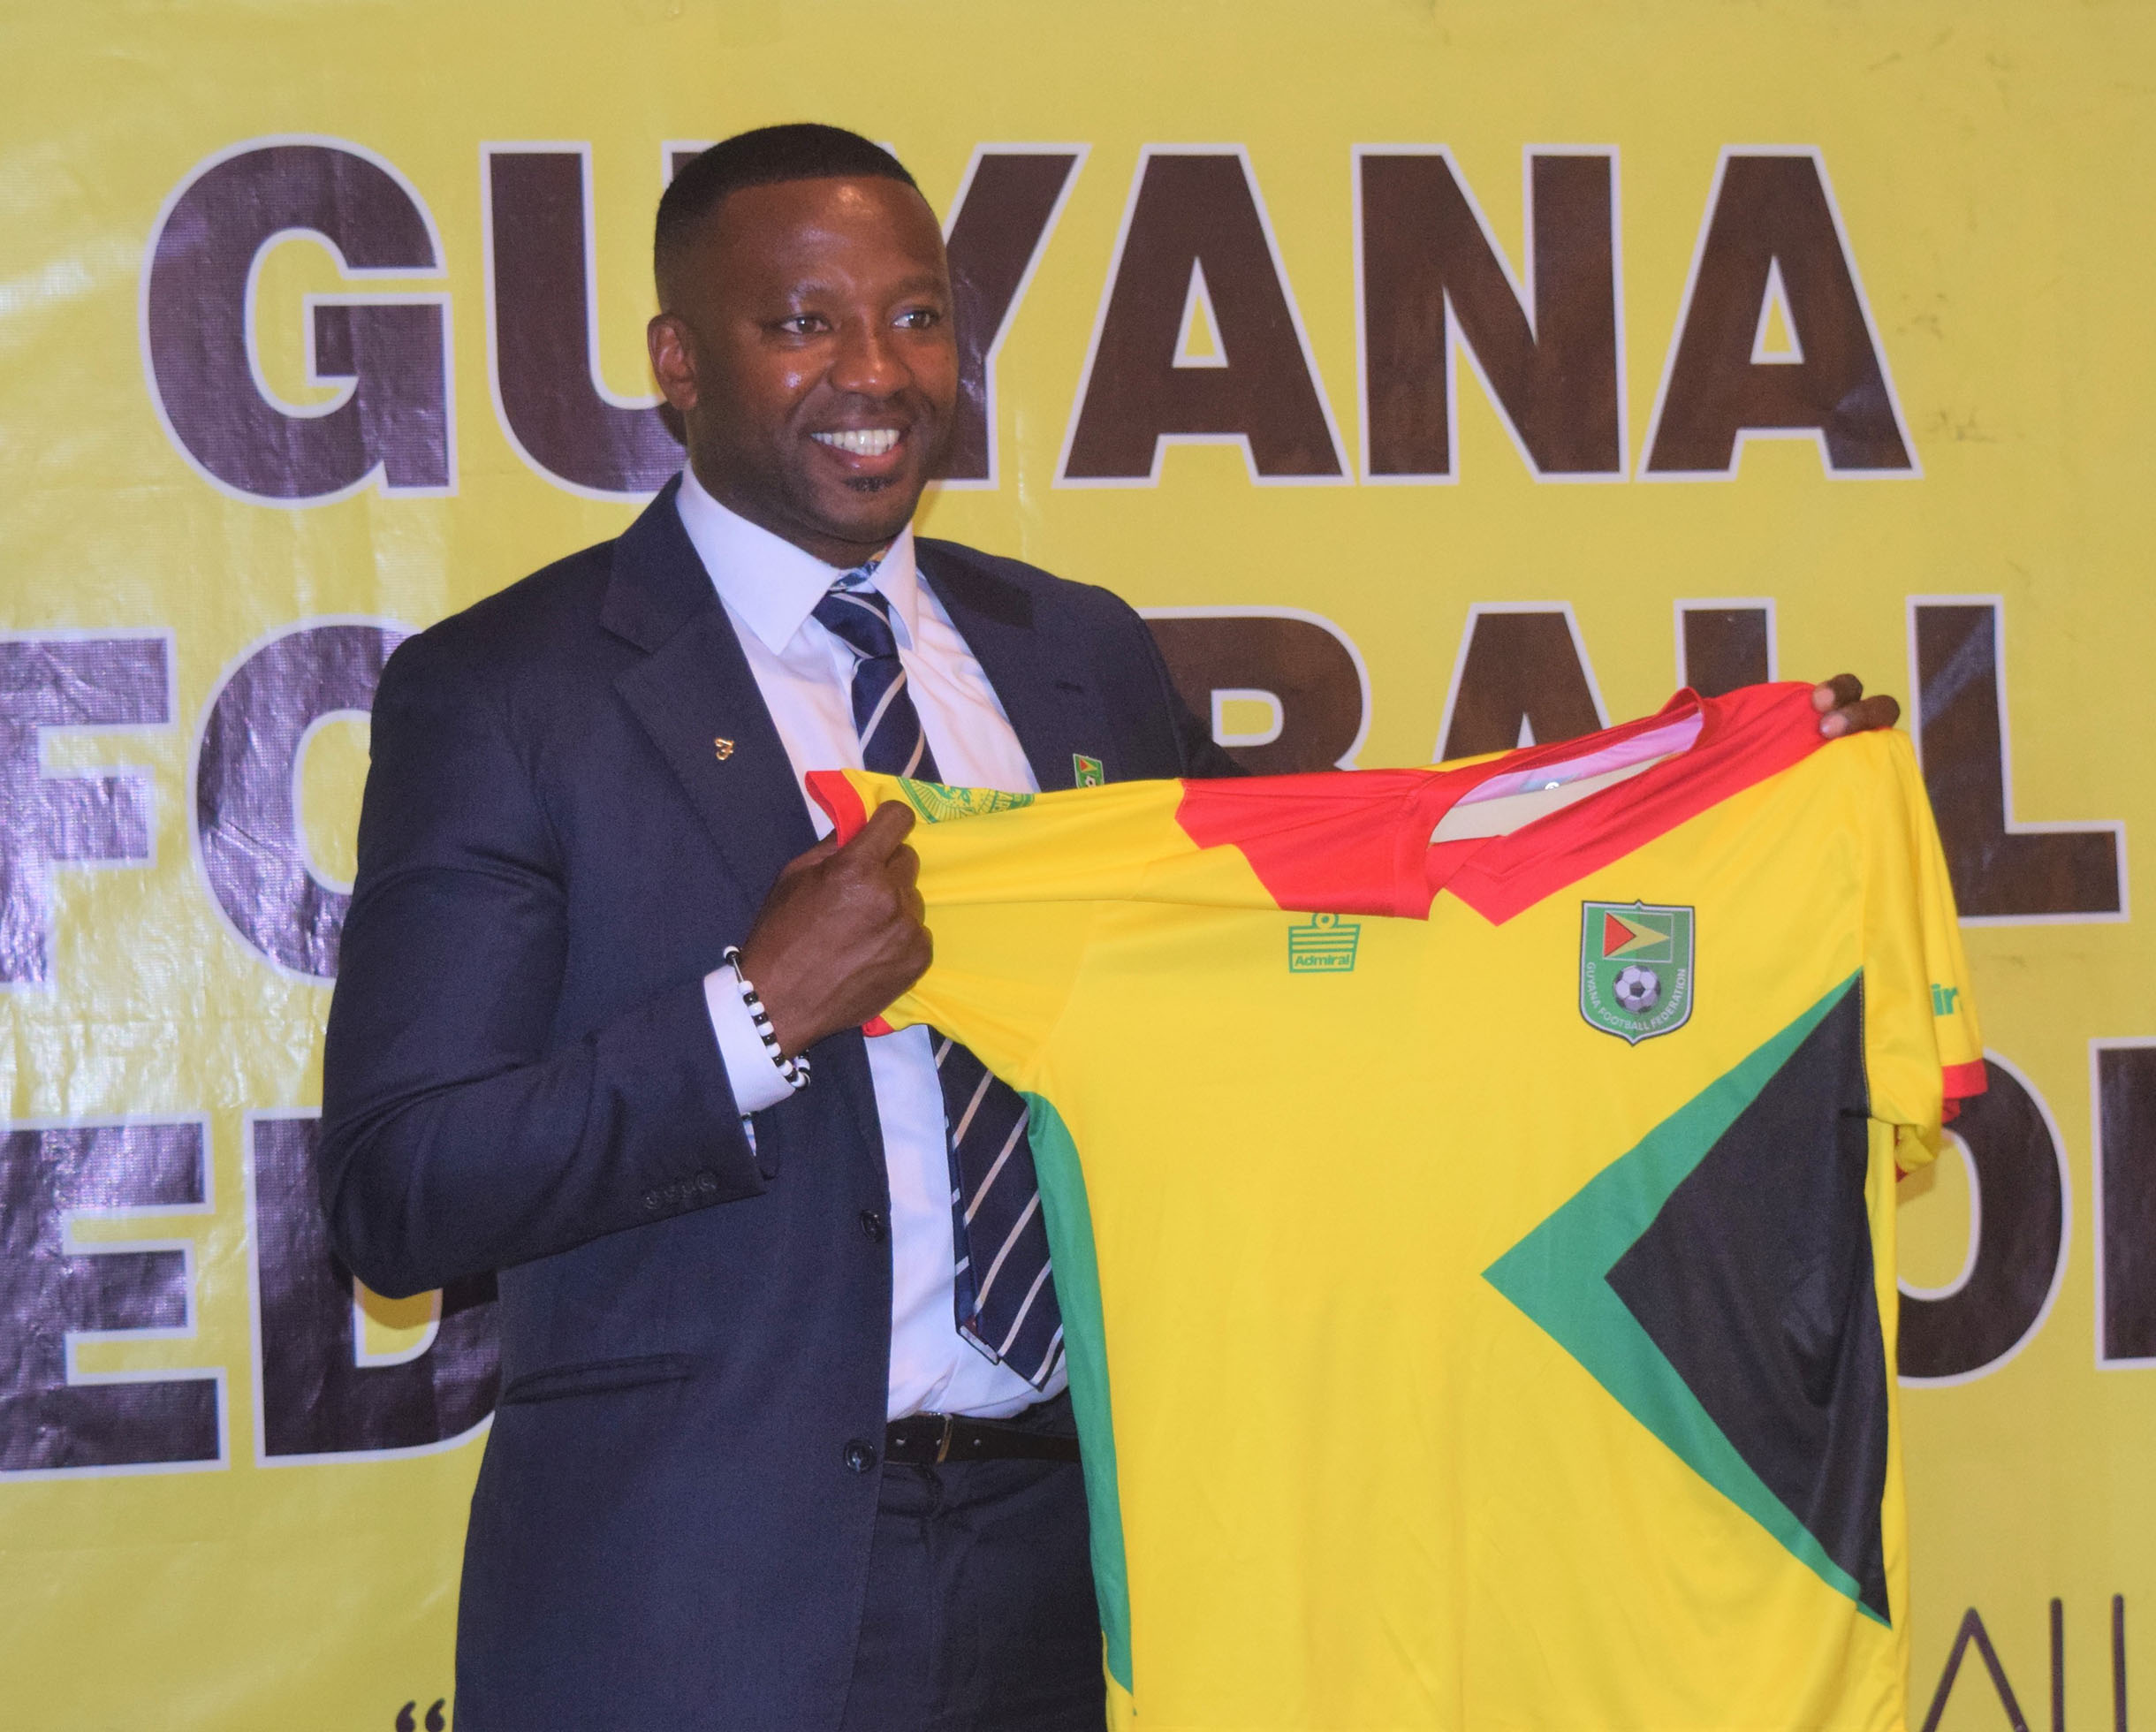 Guyana Targeting Place In Top 100